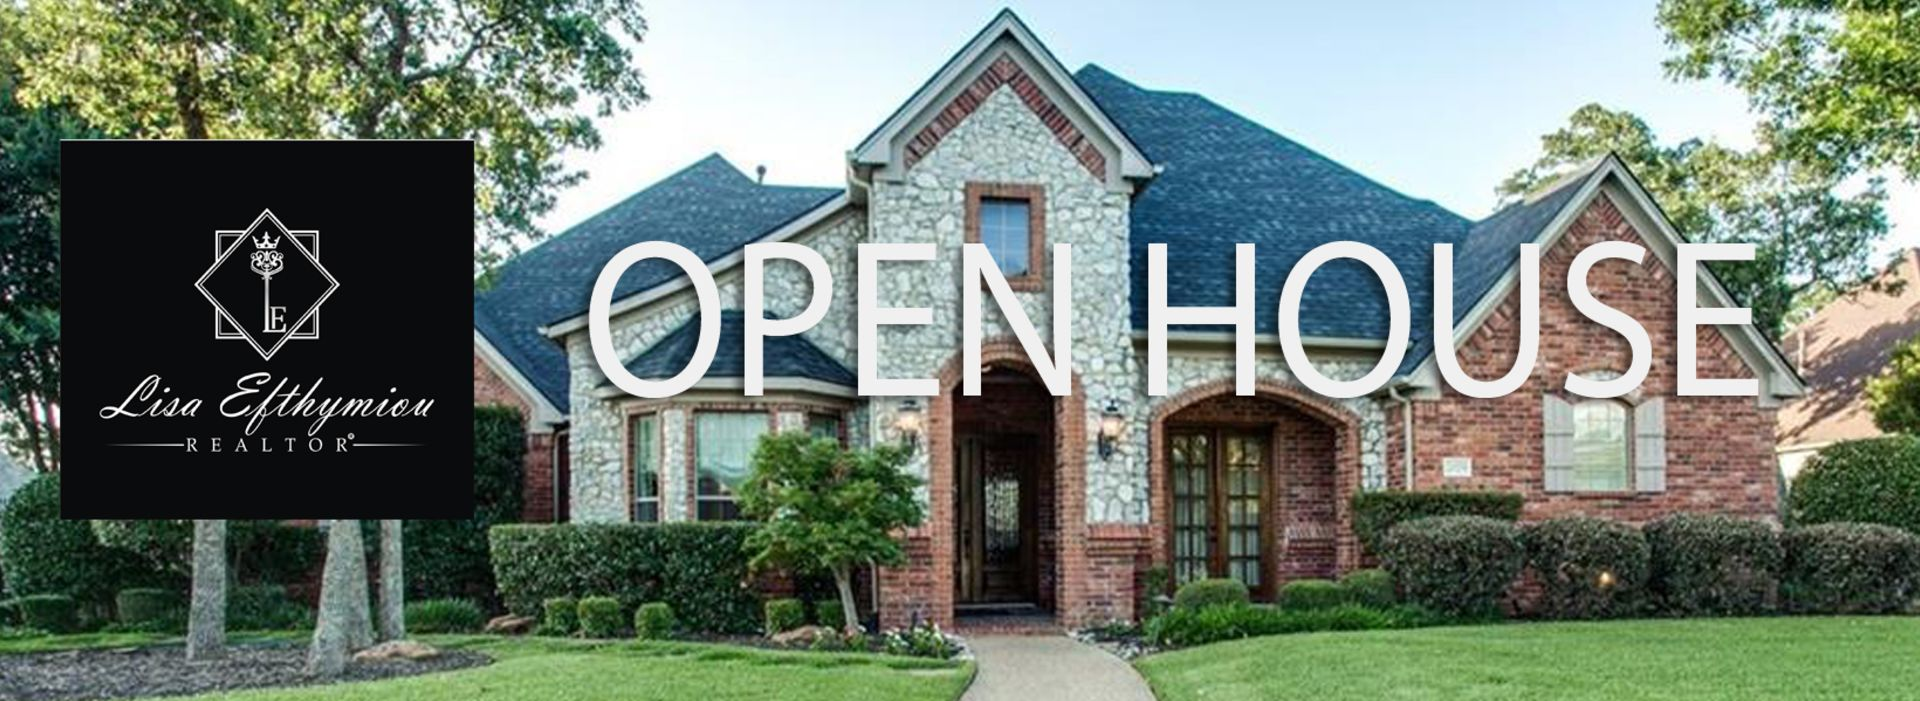 OPEN HOUSE THIS SATURDAY: 2029 Bantry Dr, Keller, TX 76262